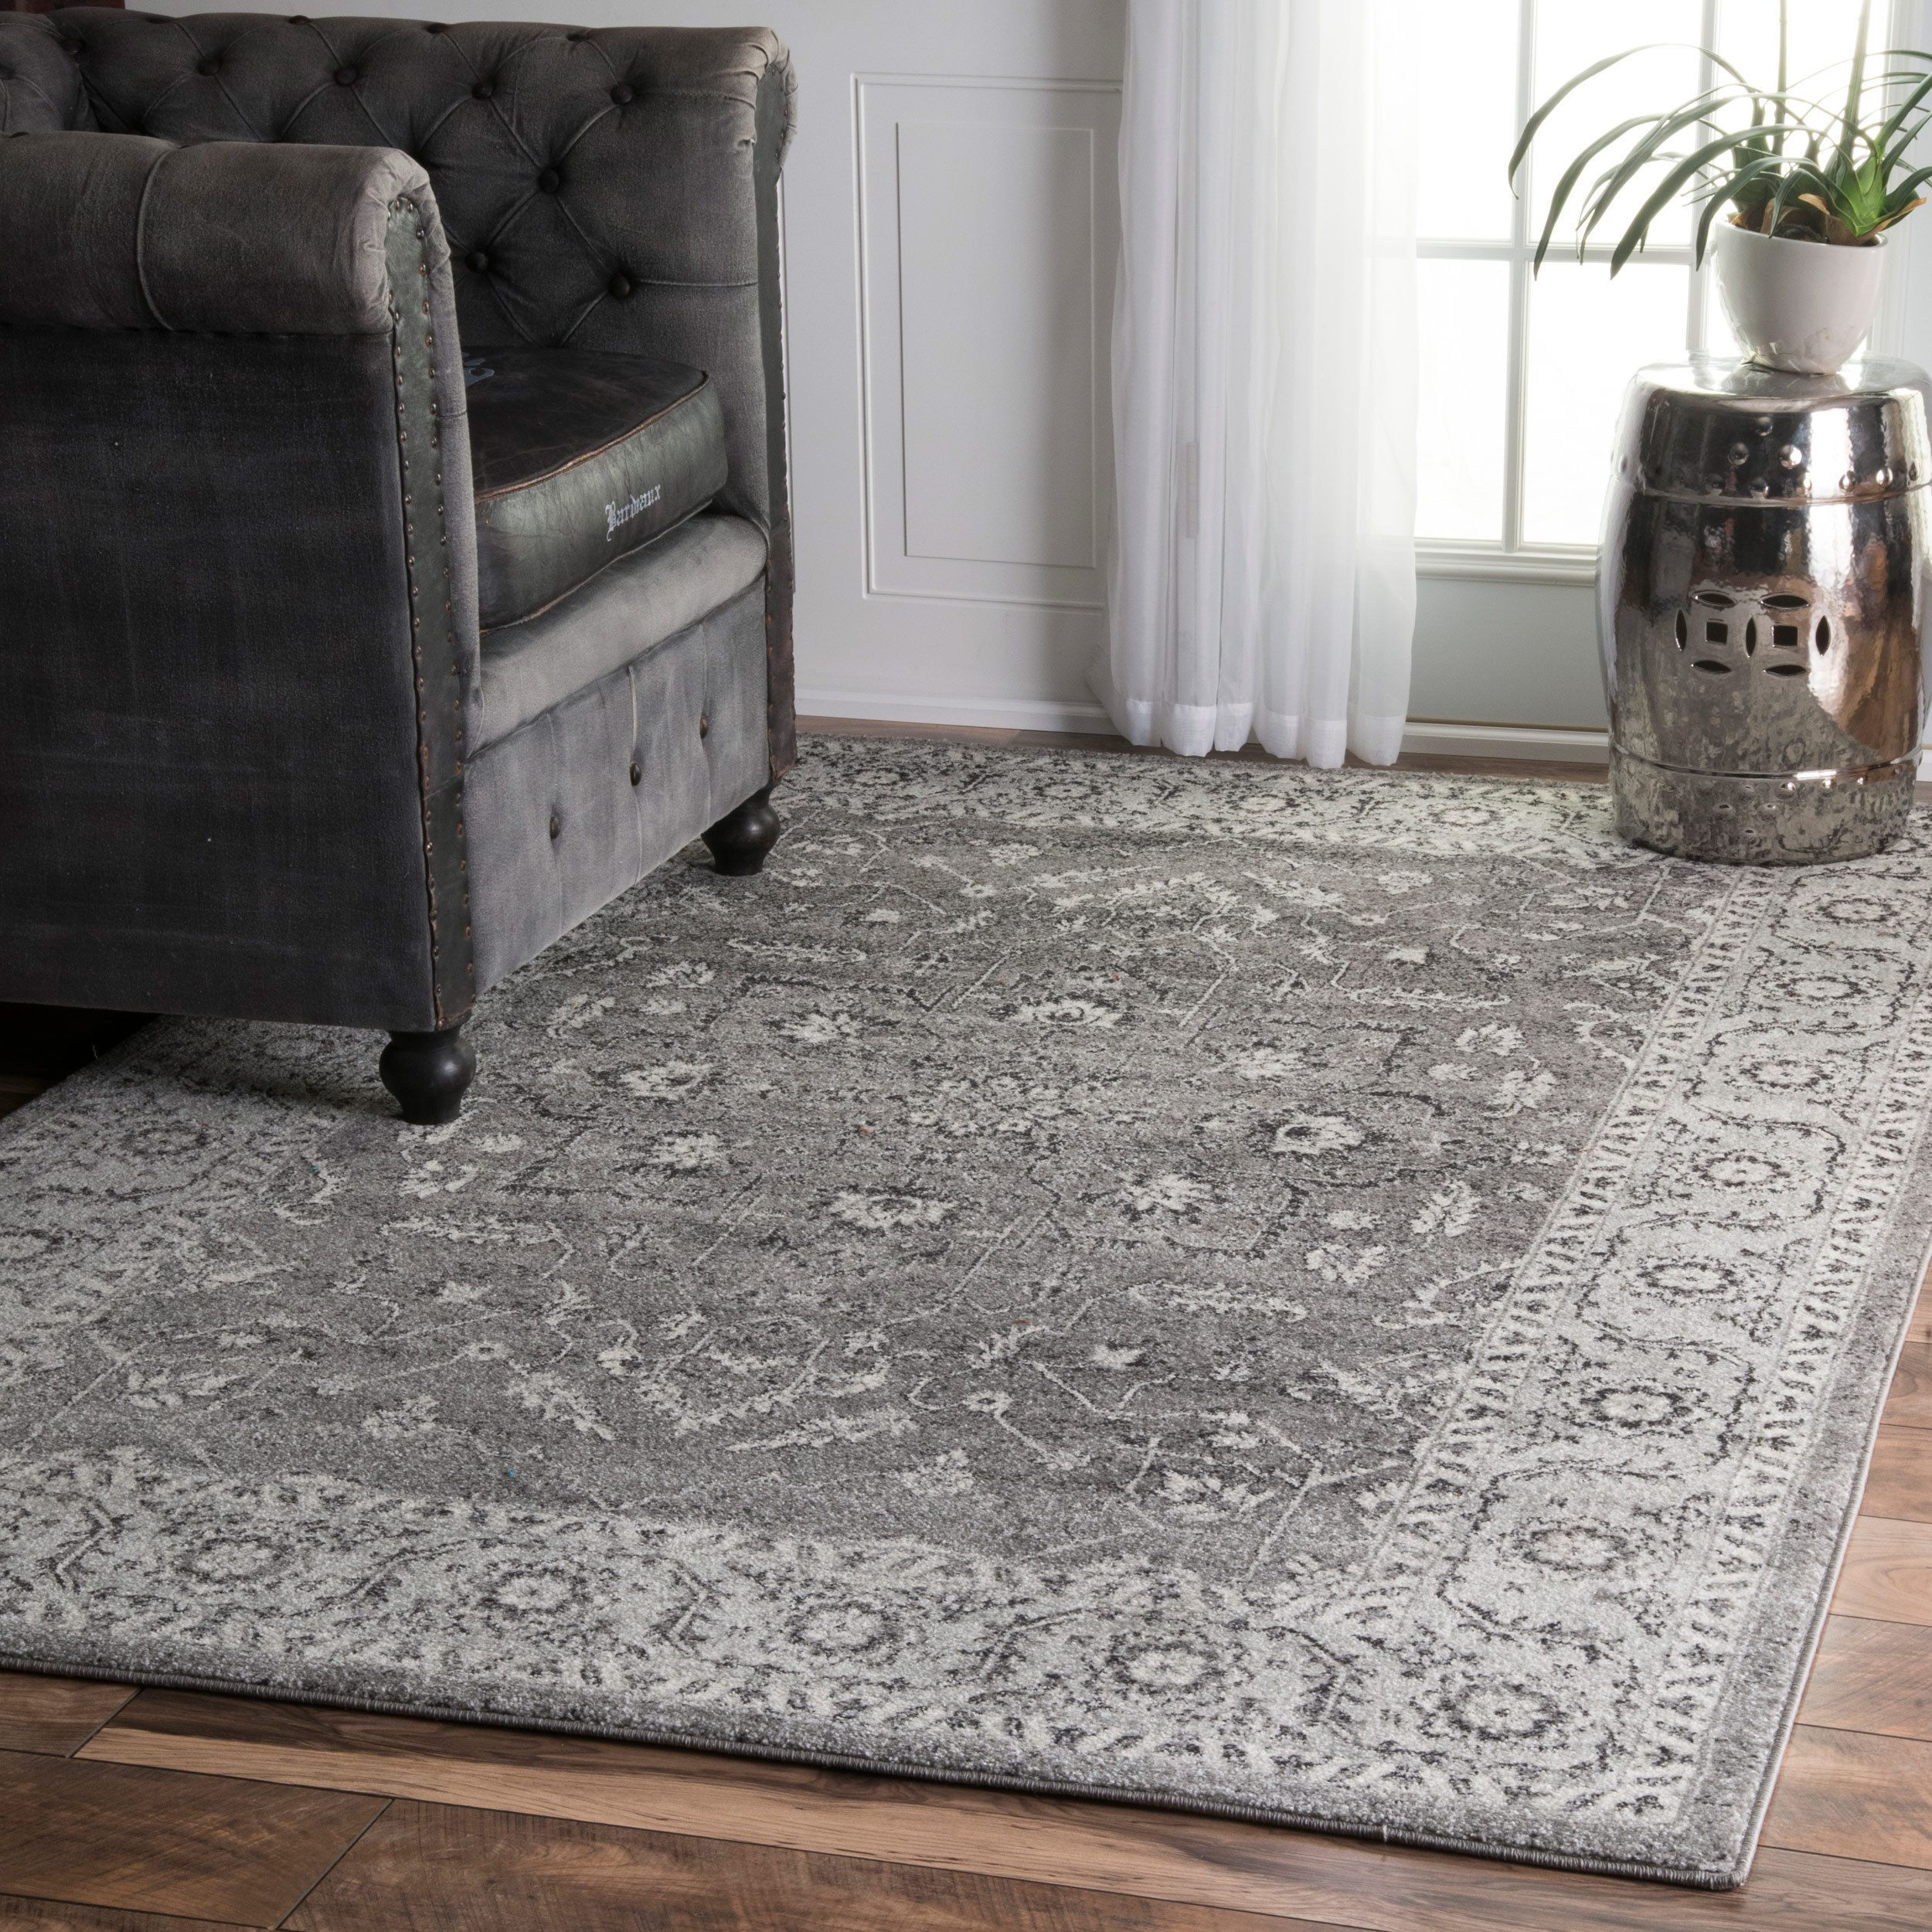 Grey,8u0027 X 10u0027,9u0027 X 12u0027 Area Rugs: Free Shipping On Orders Over $45! Find  The Perfect Area Rug For Your Space From Overstock.com Your Online Home Deu2026